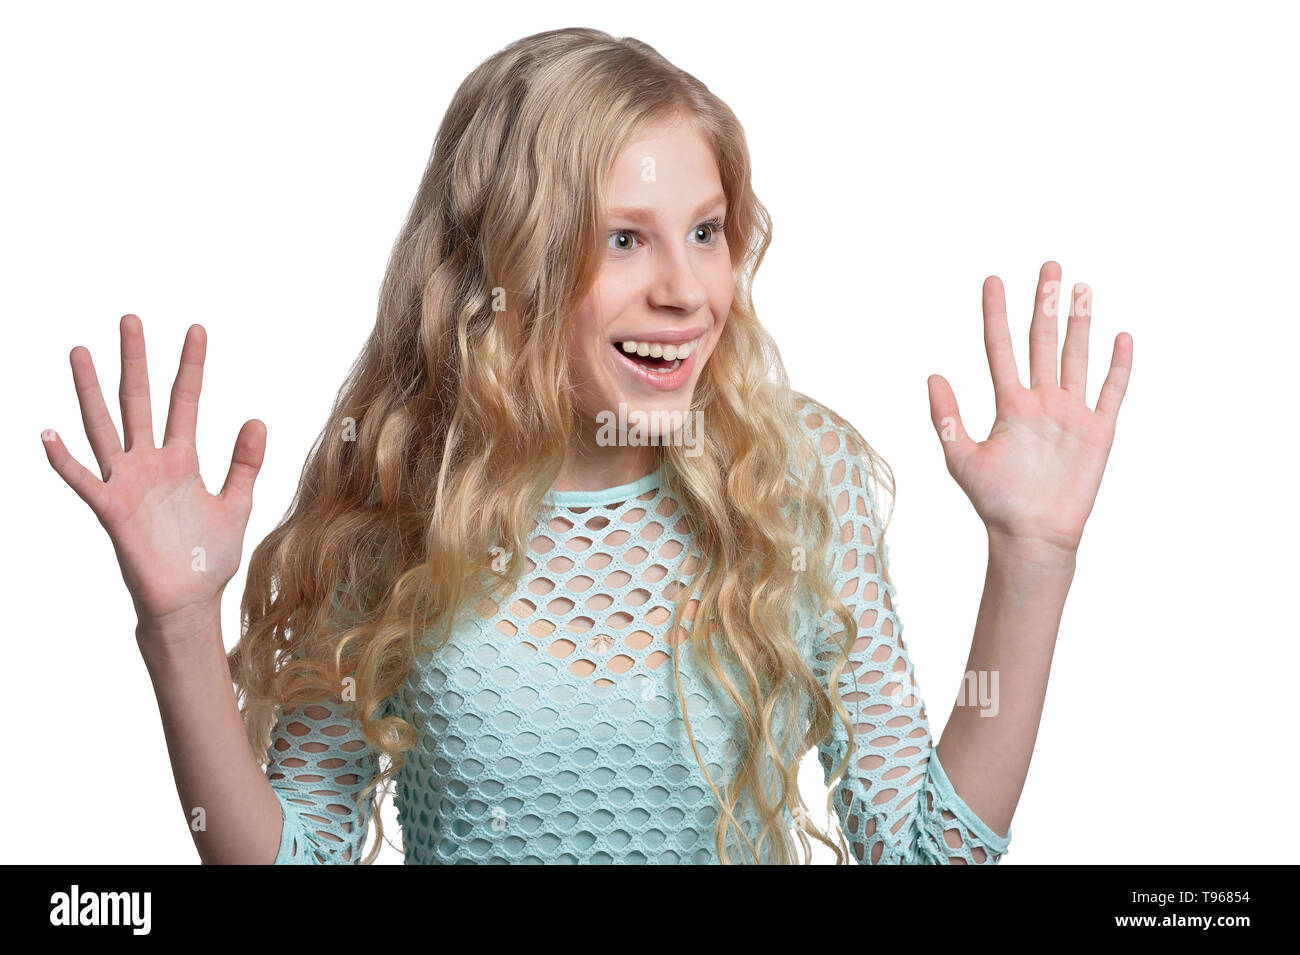 Portrait of cute blonde teen girl on white background Stock Photo